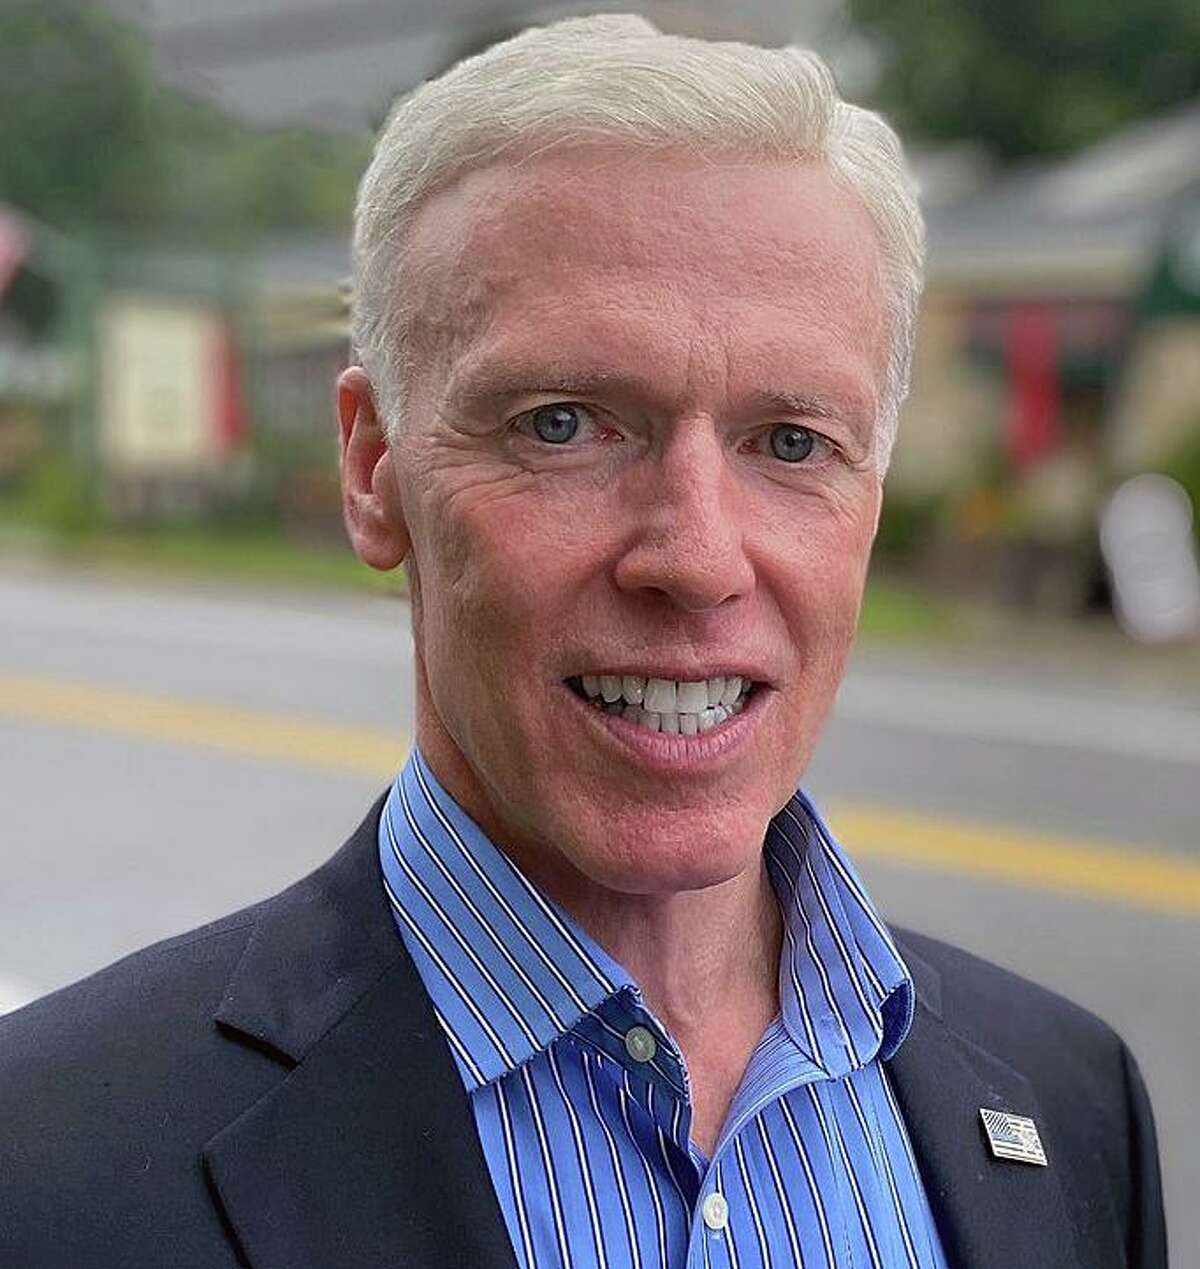 David X. Sullivan, the GOP candidate for Connecticut's 5th Congressional District.